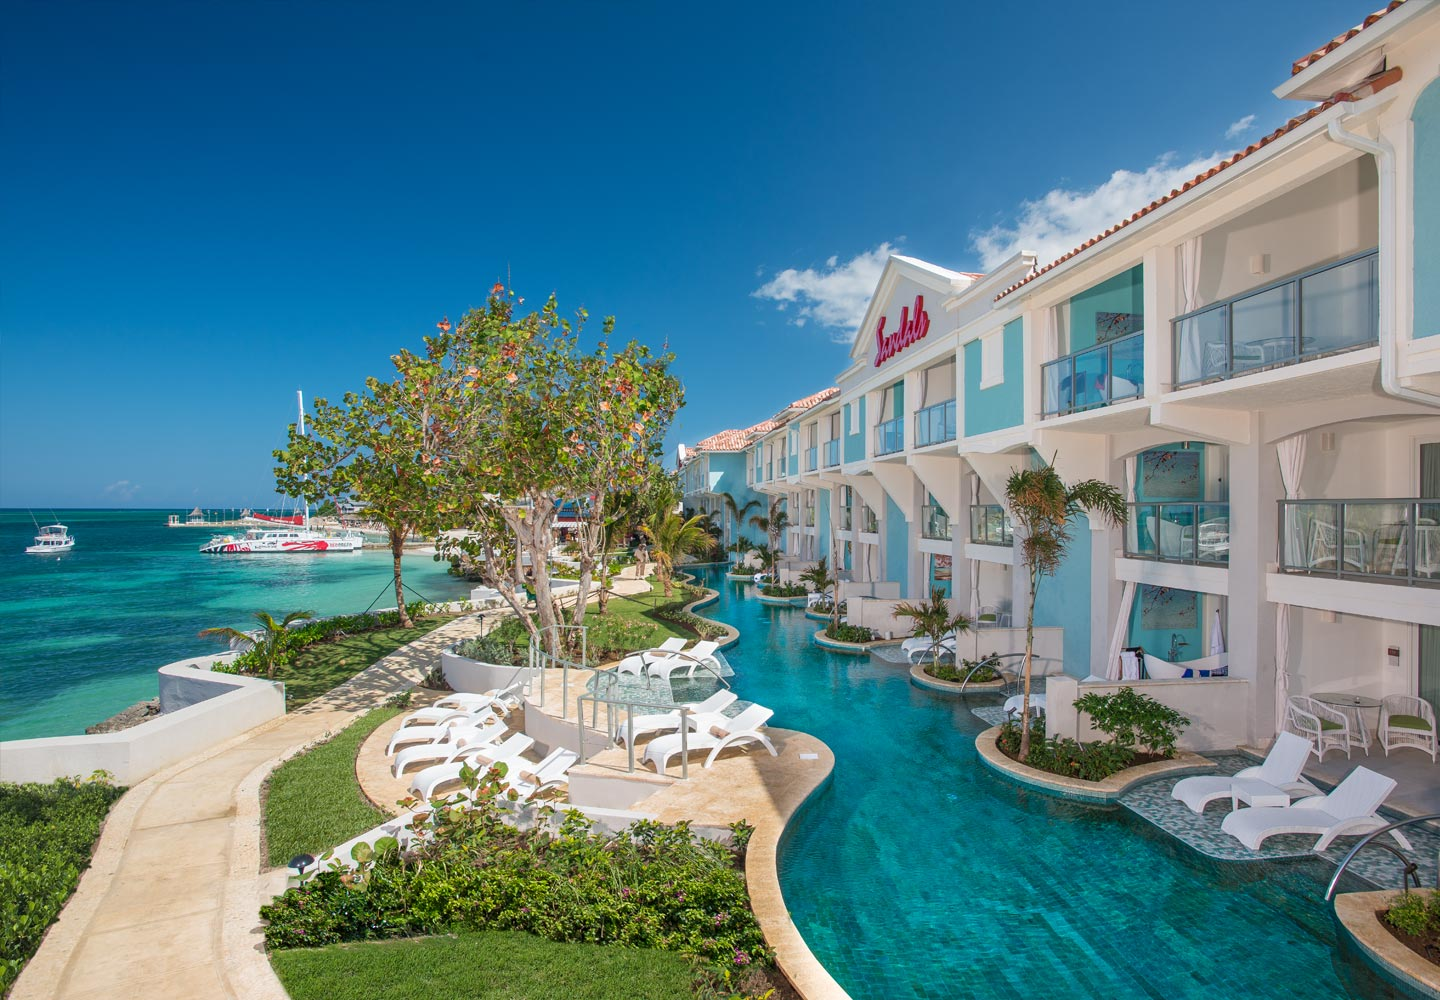 Travel Agency All-Inclusive Resort Sandals Montego Bay 011